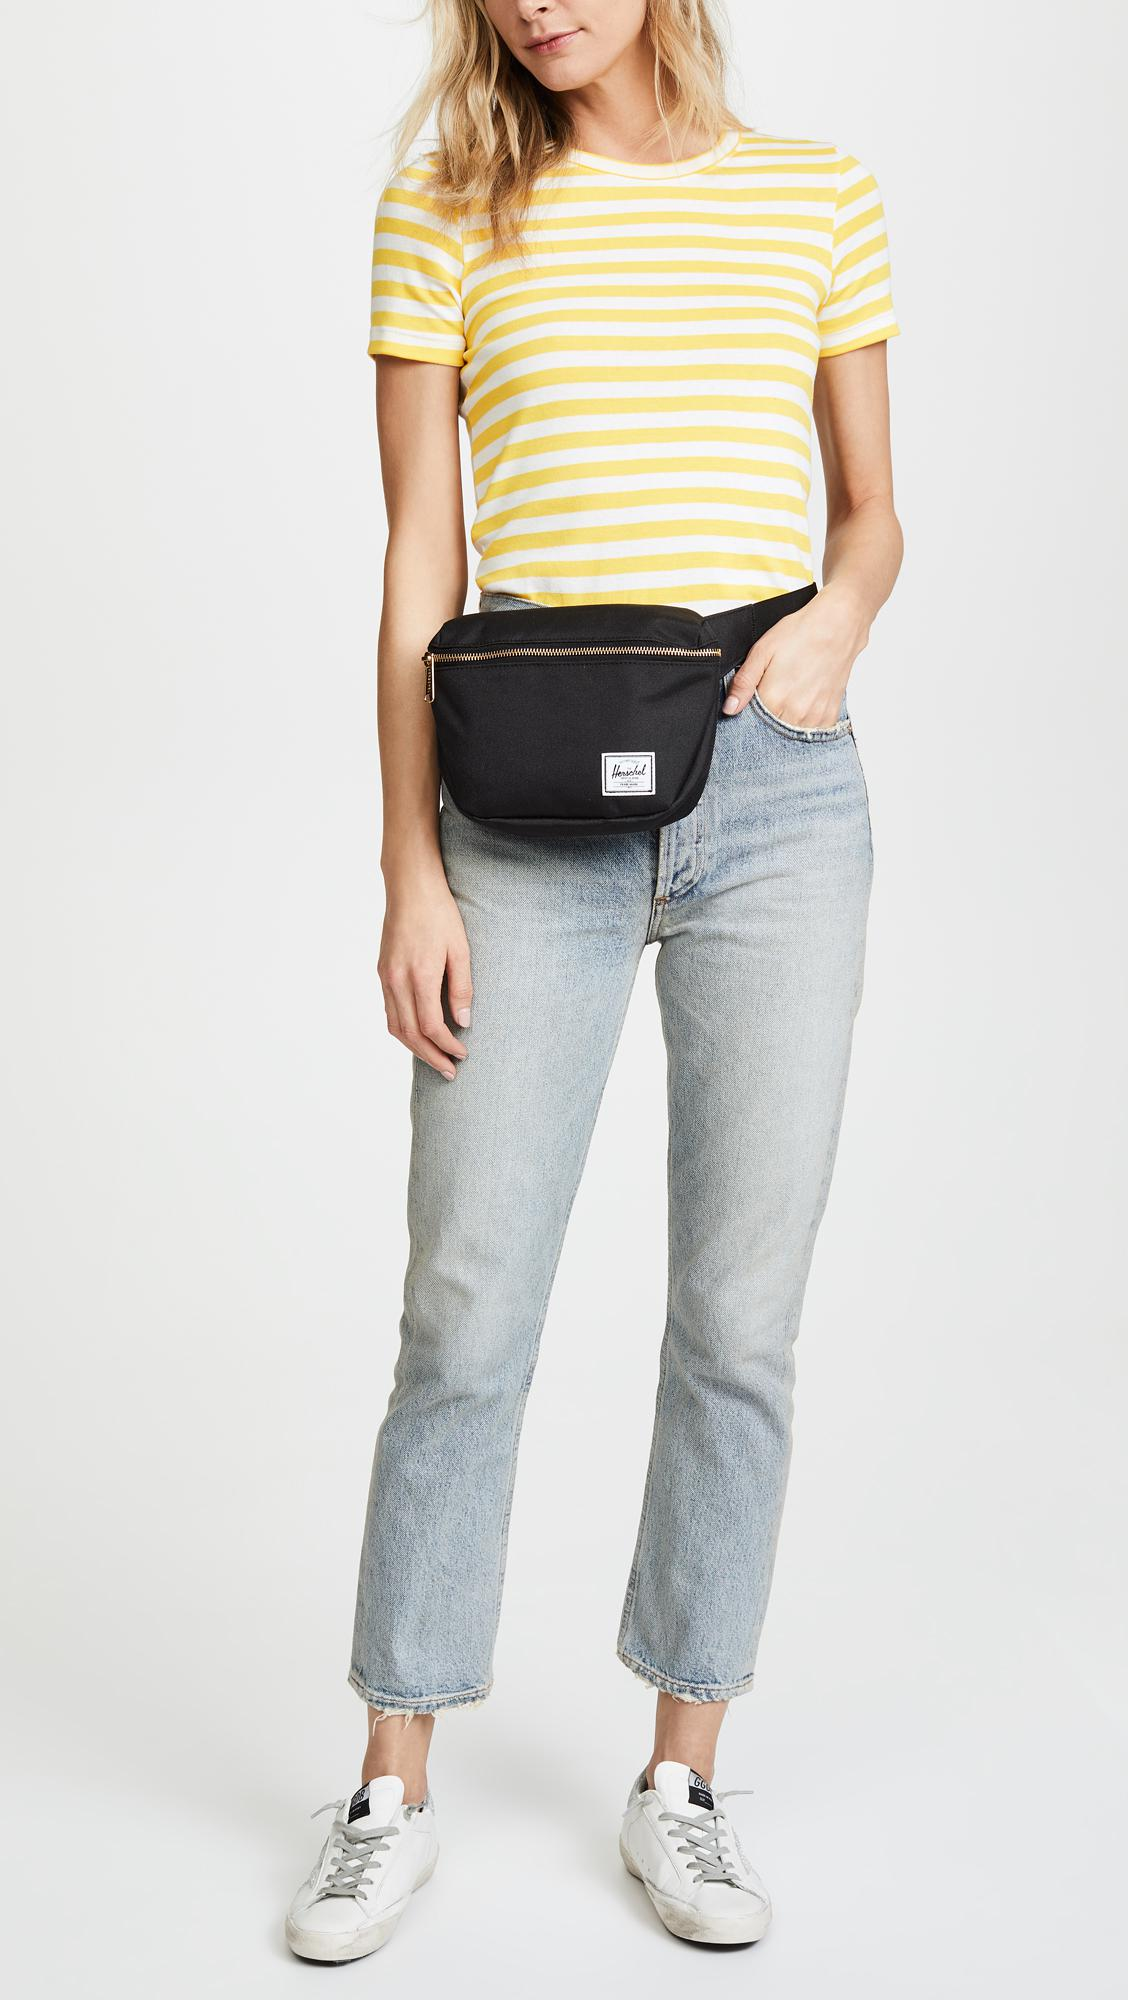 e6c1b3824c8 Herschel Supply Co. - Black Fifteen Fanny Pack - Lyst. View fullscreen